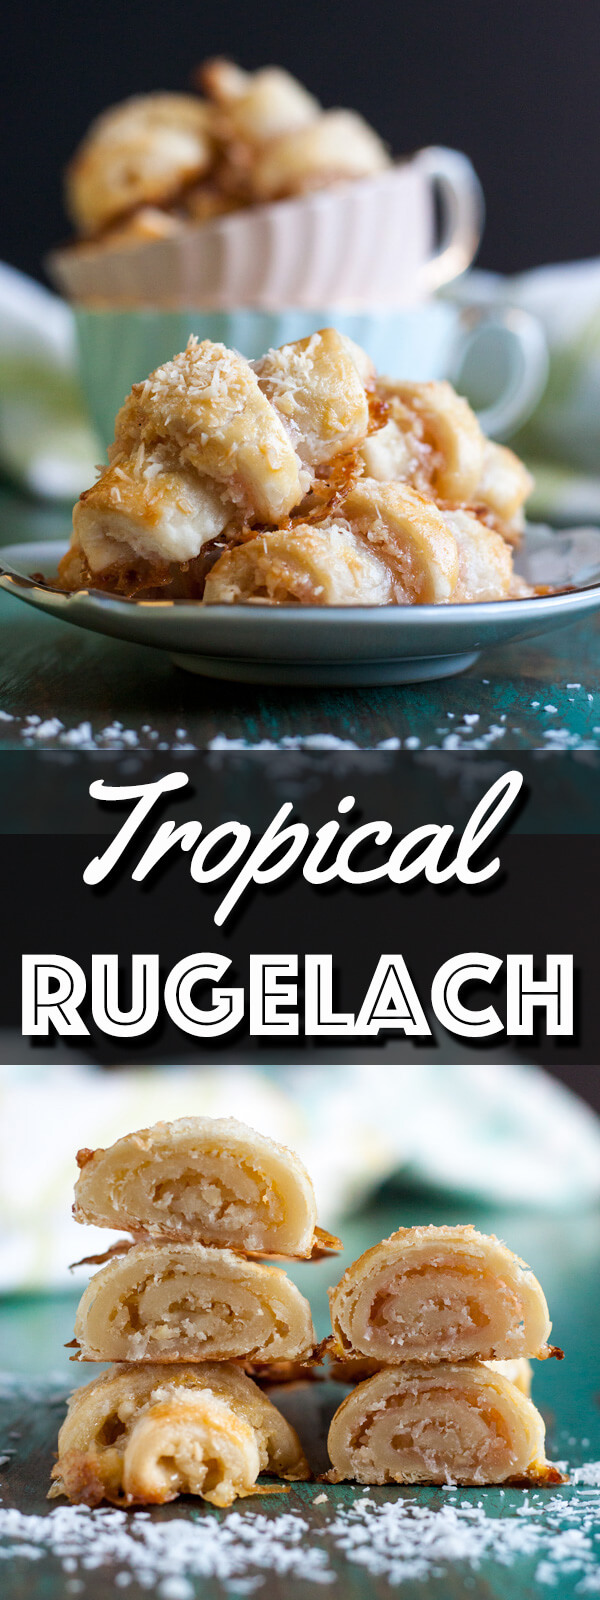 Tropical Rugelach are delicious little bites of tender pastries filled with tropical fruit butter, coconut flake and macadamia nut. They taste like a vacation in your mouth. | wildwildwhisk.com #rugelach #tropical